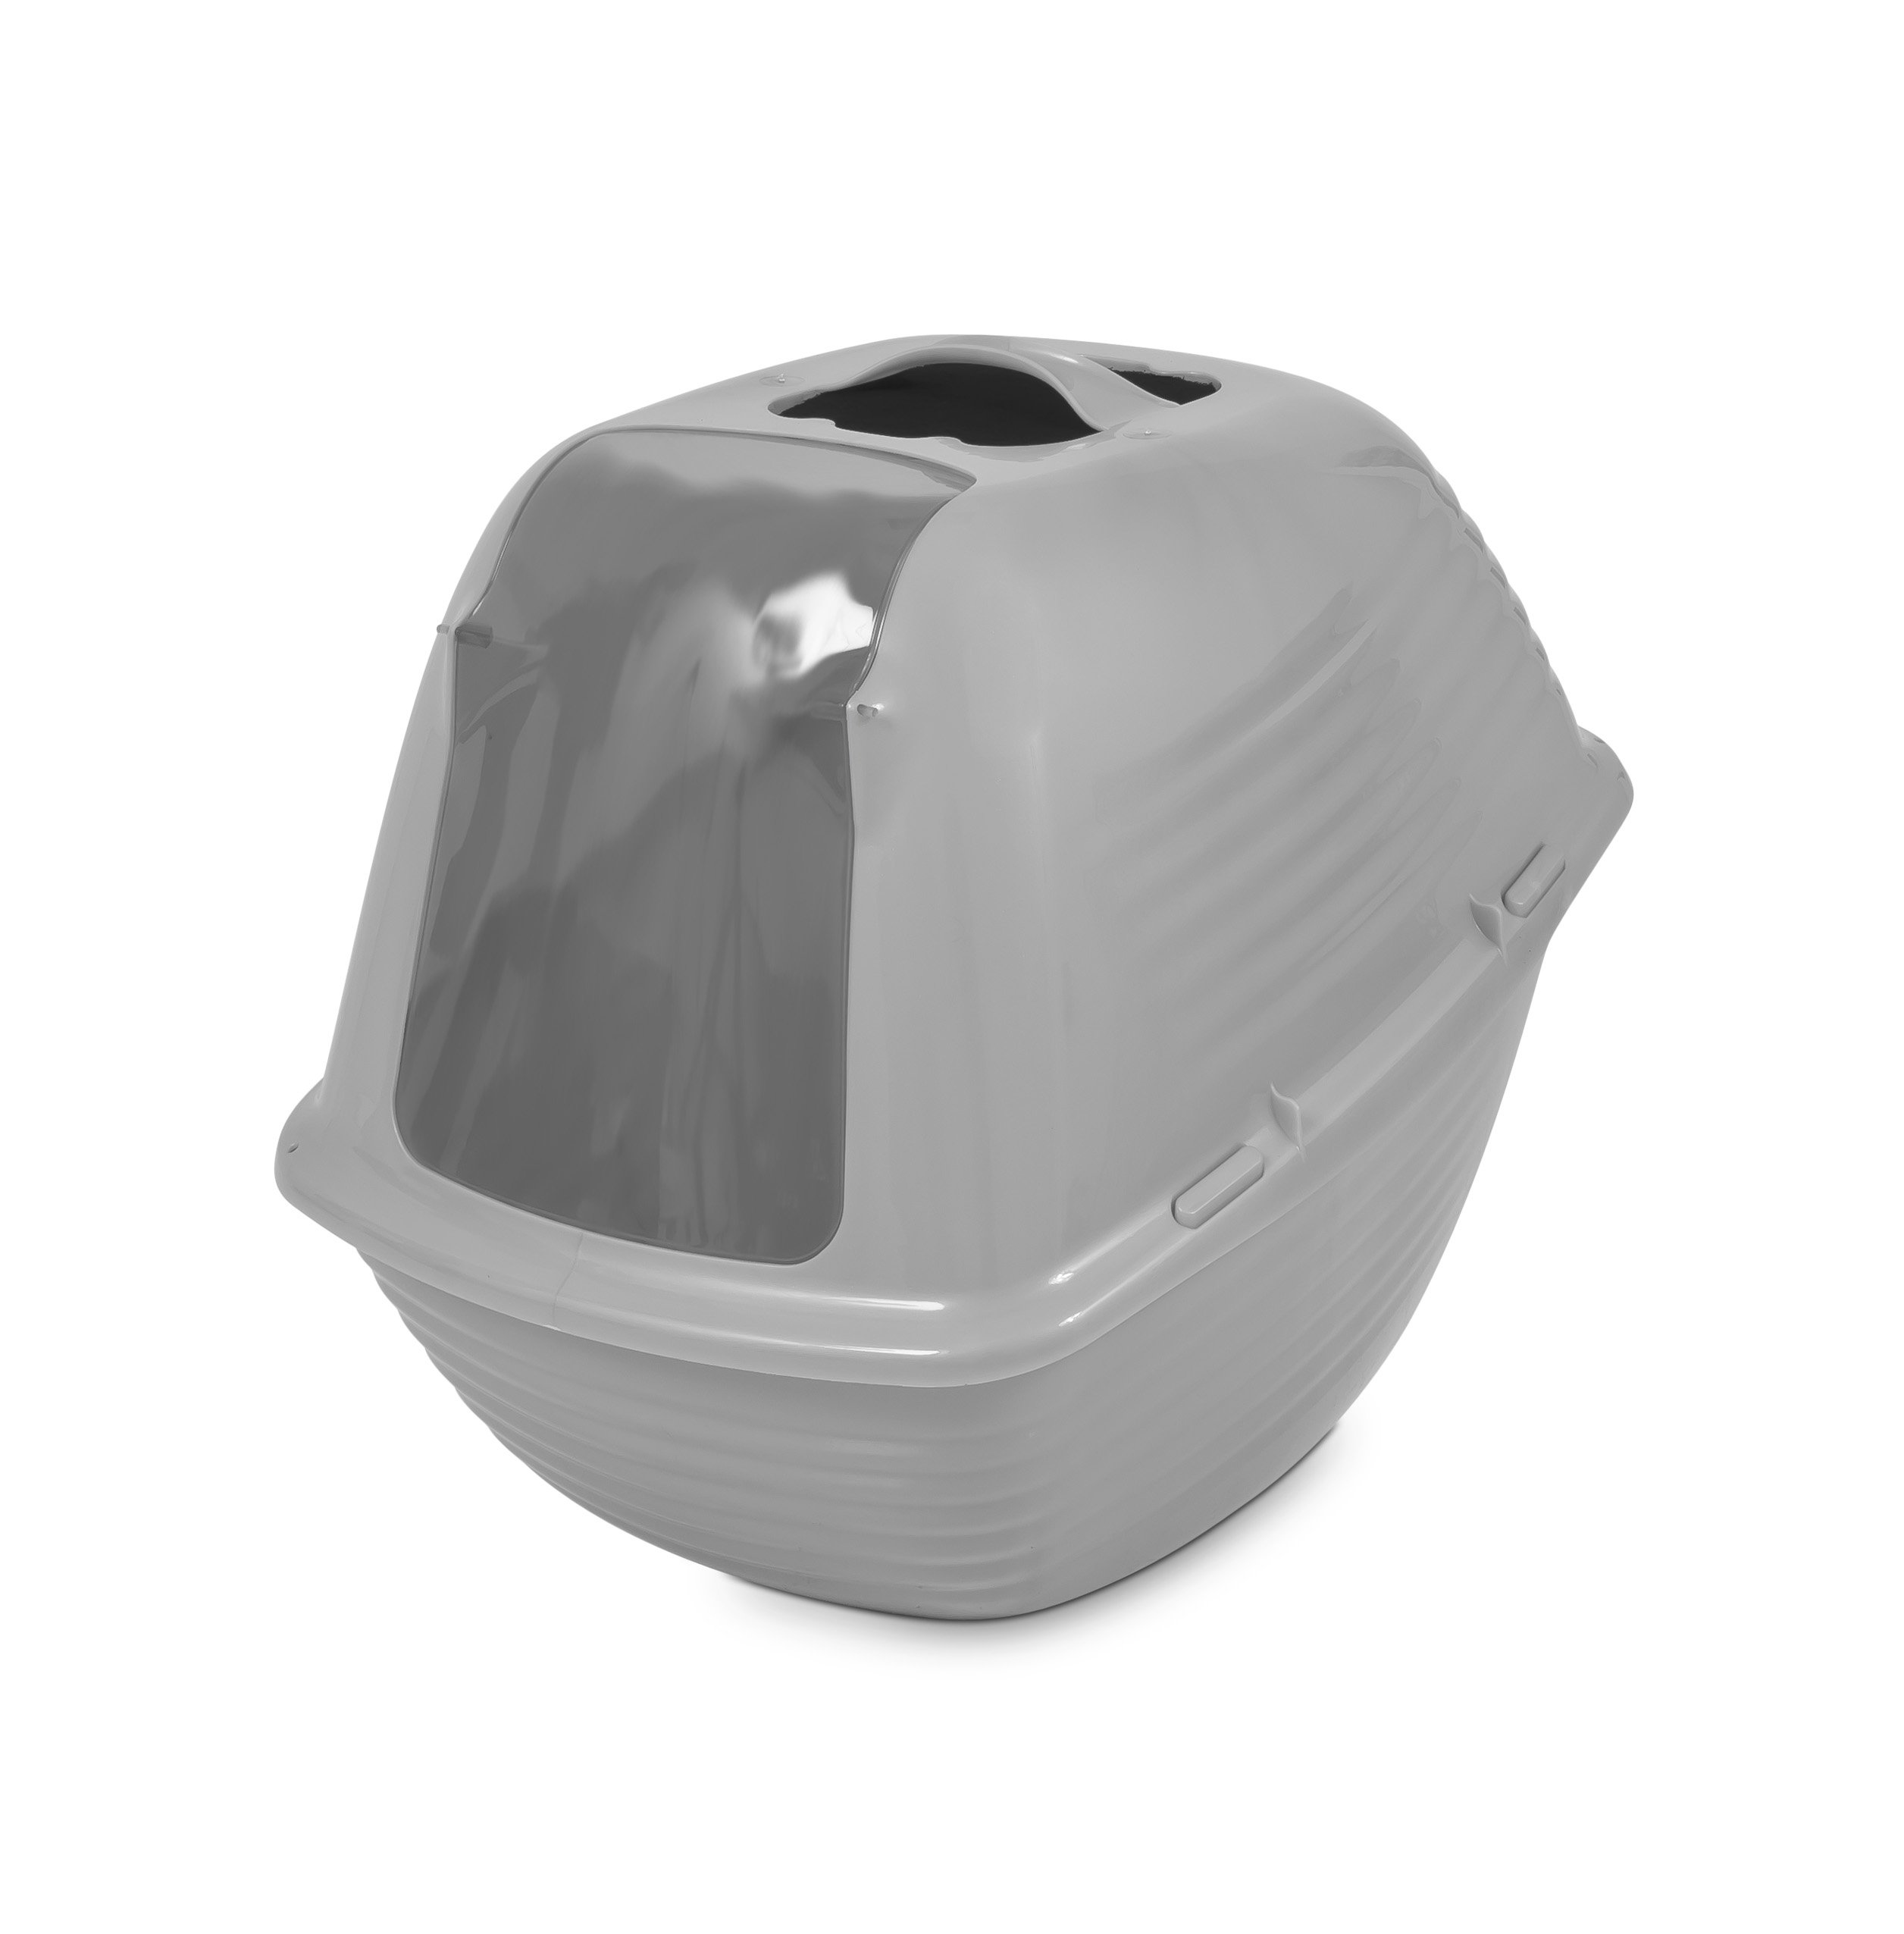 PETMATE STAY FRESH HOODED PAN LARGE by Doskocil